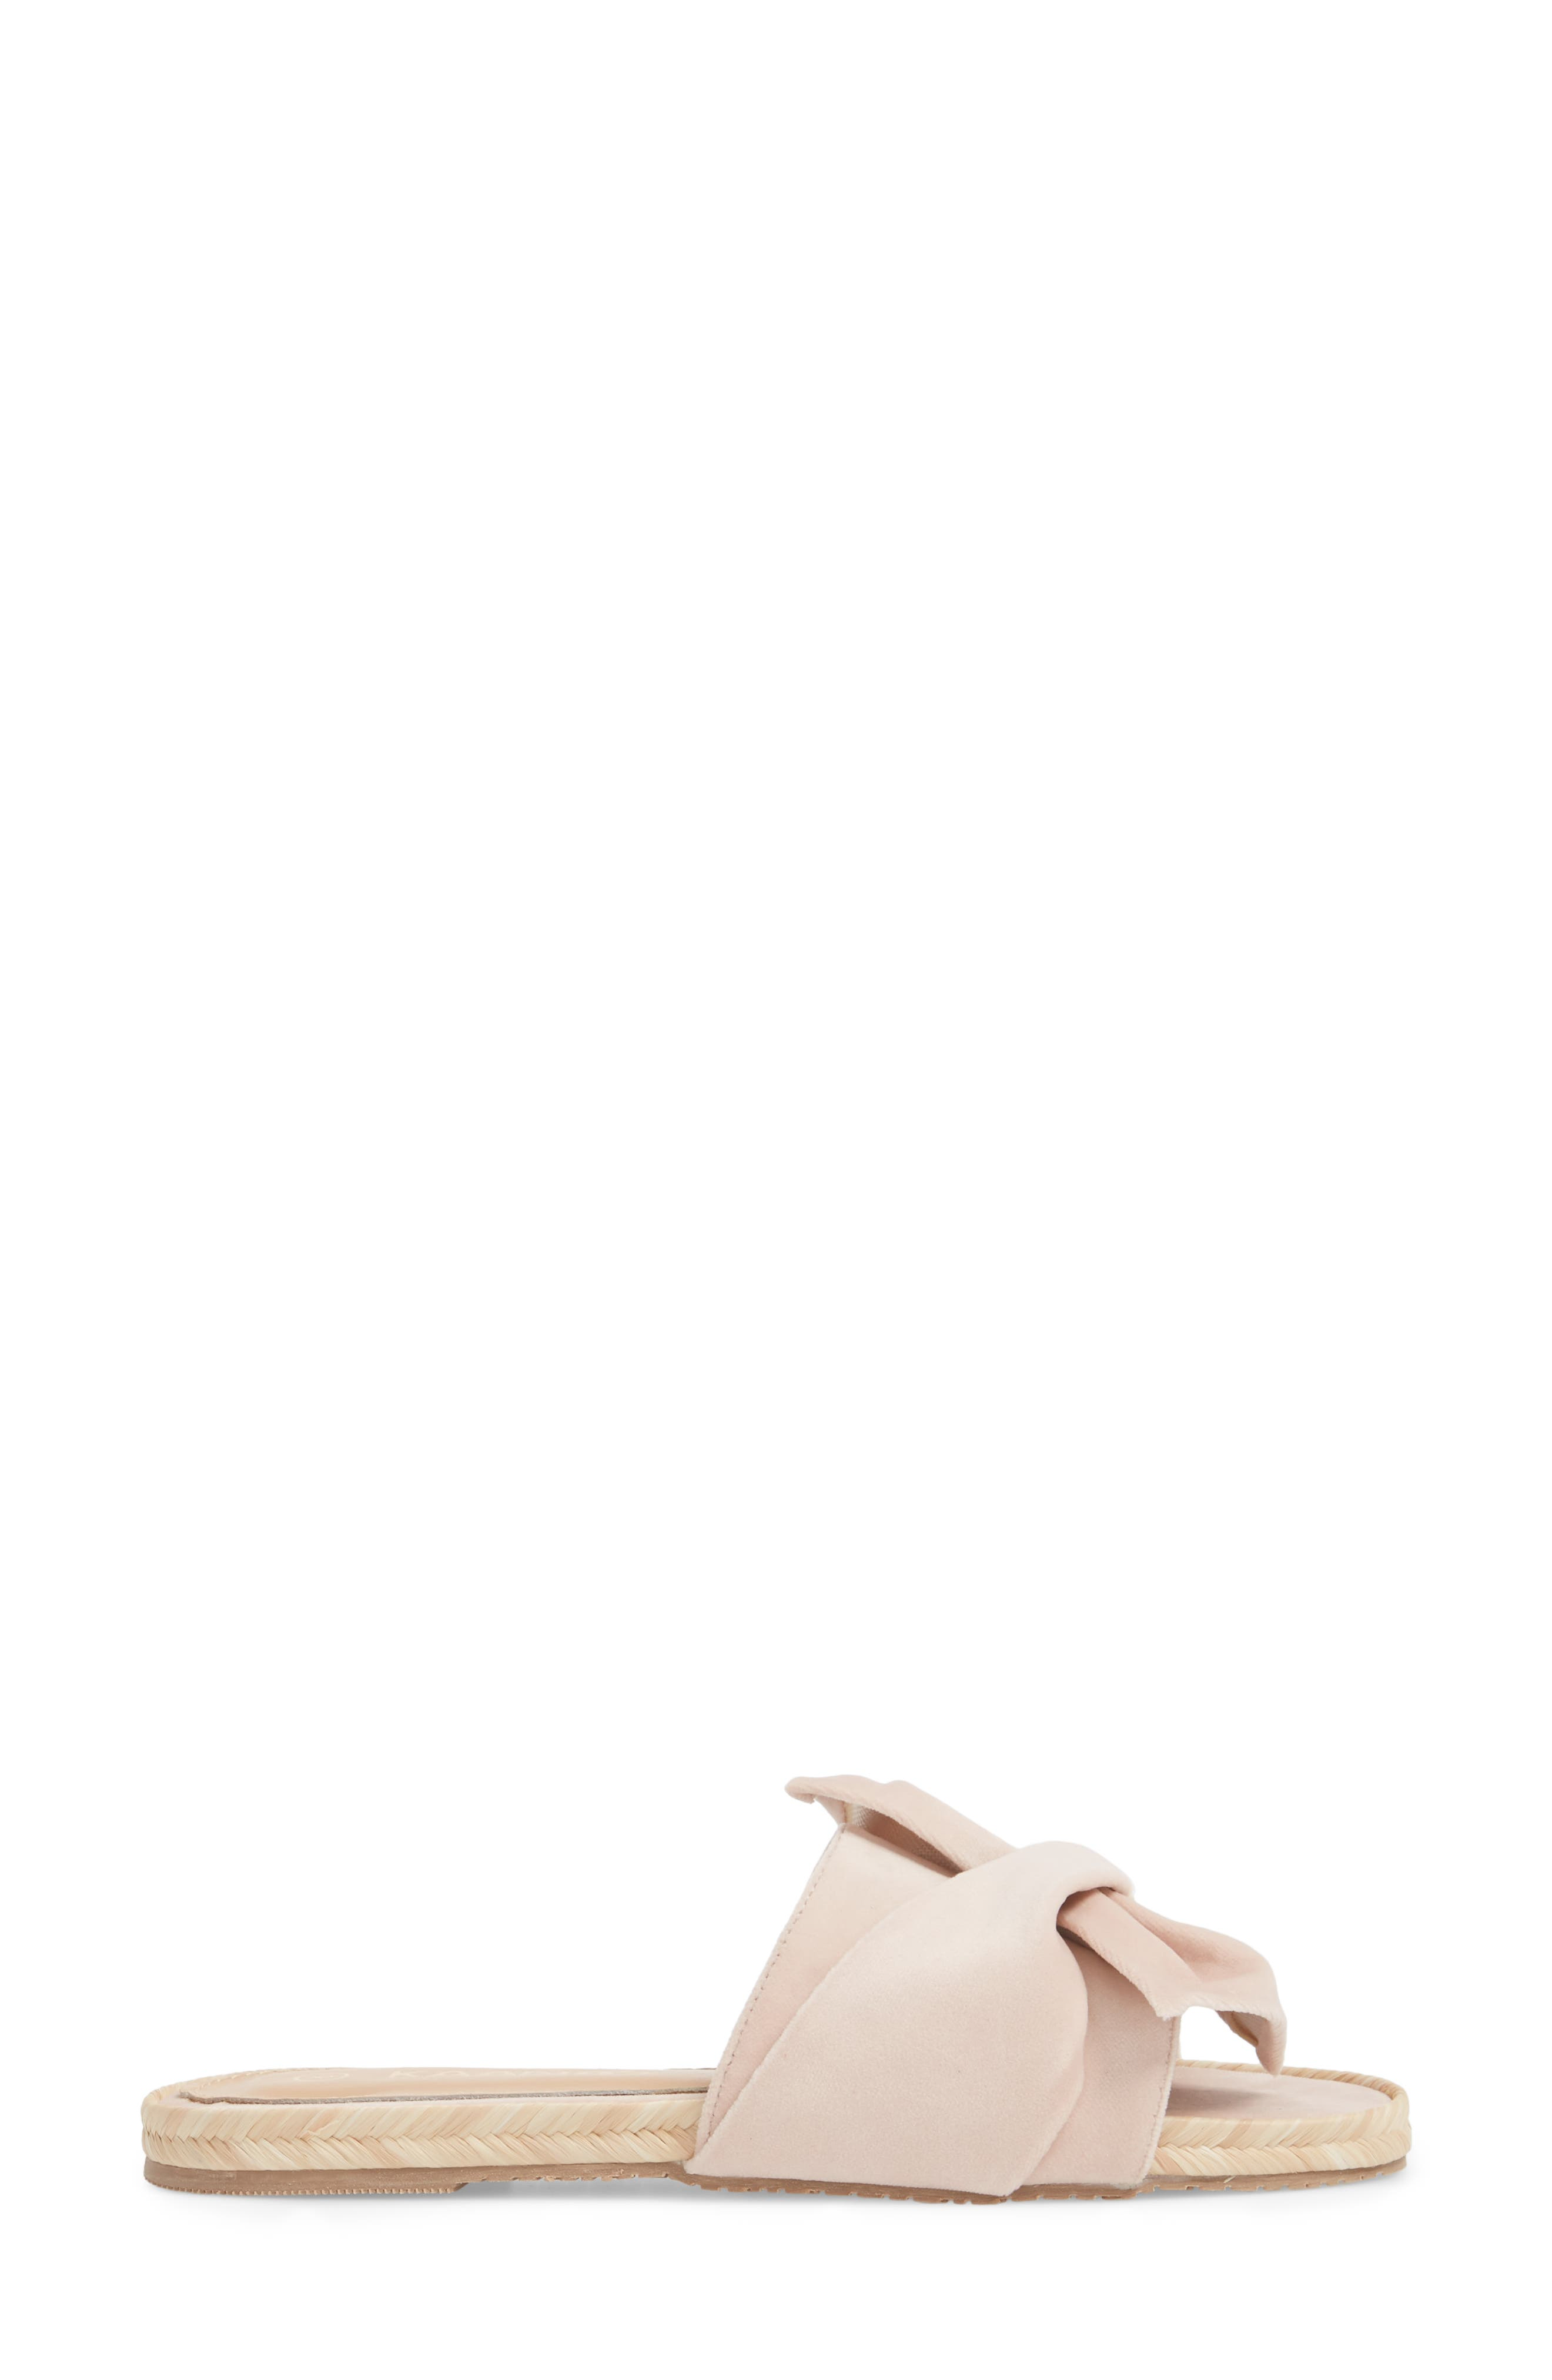 Sausalito Knotted Slide Sandal,                             Alternate thumbnail 3, color,                             Nude